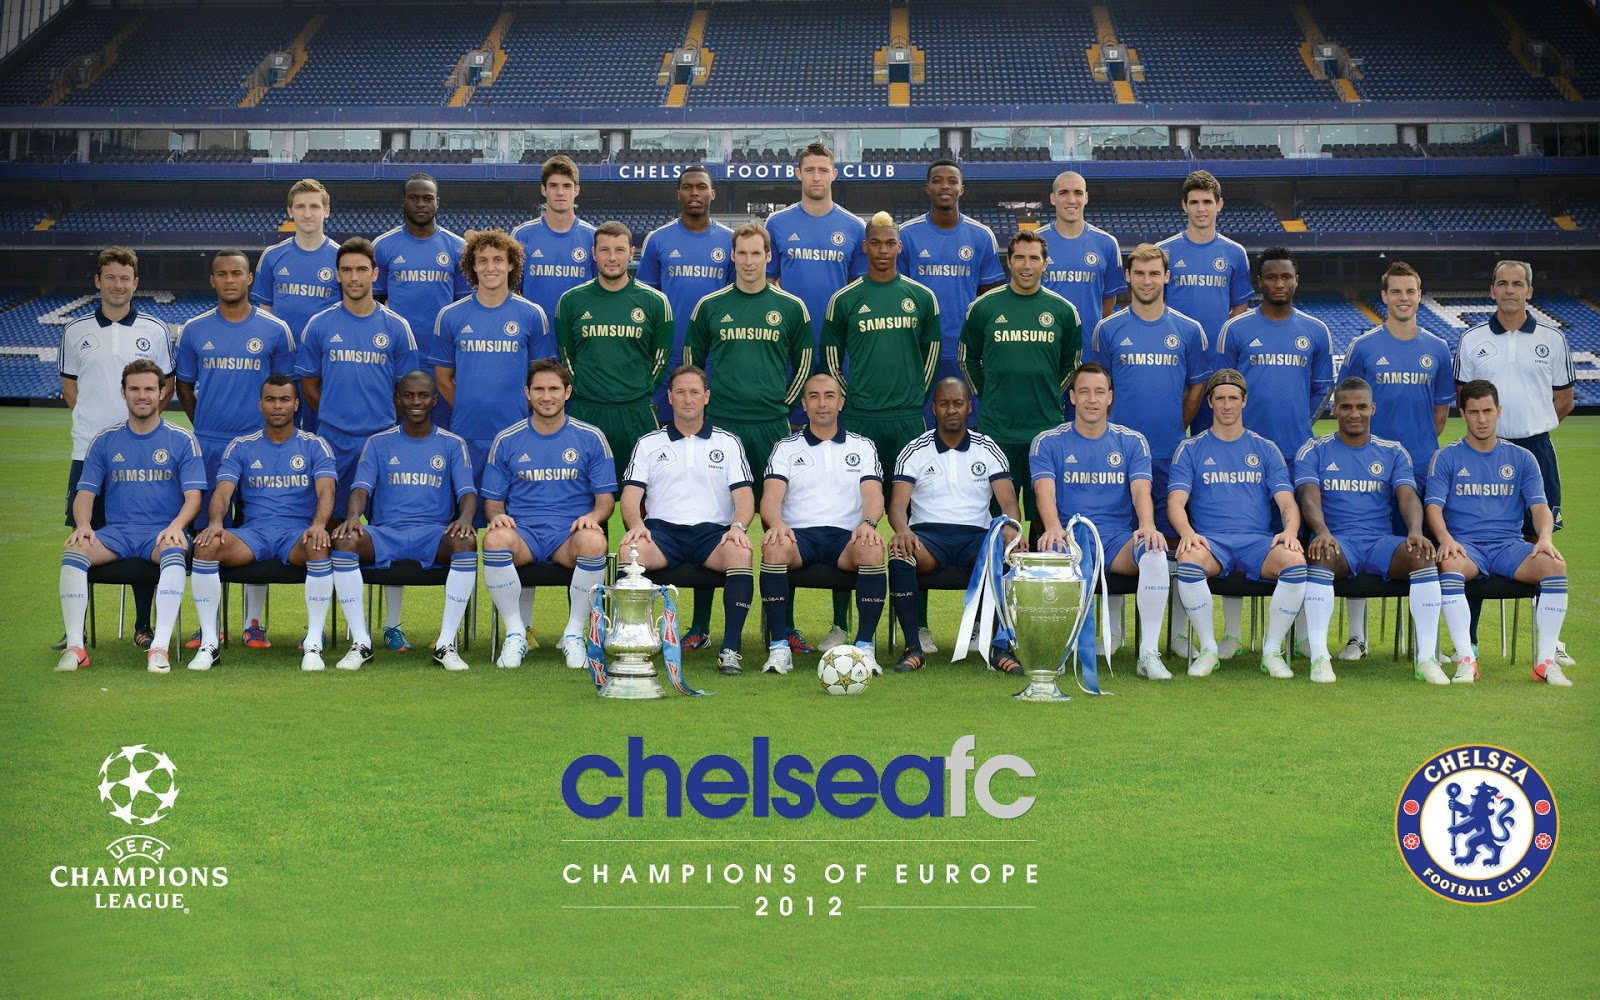 Chelsea FC Squad Picture 2012-13 | Football Club Pictures